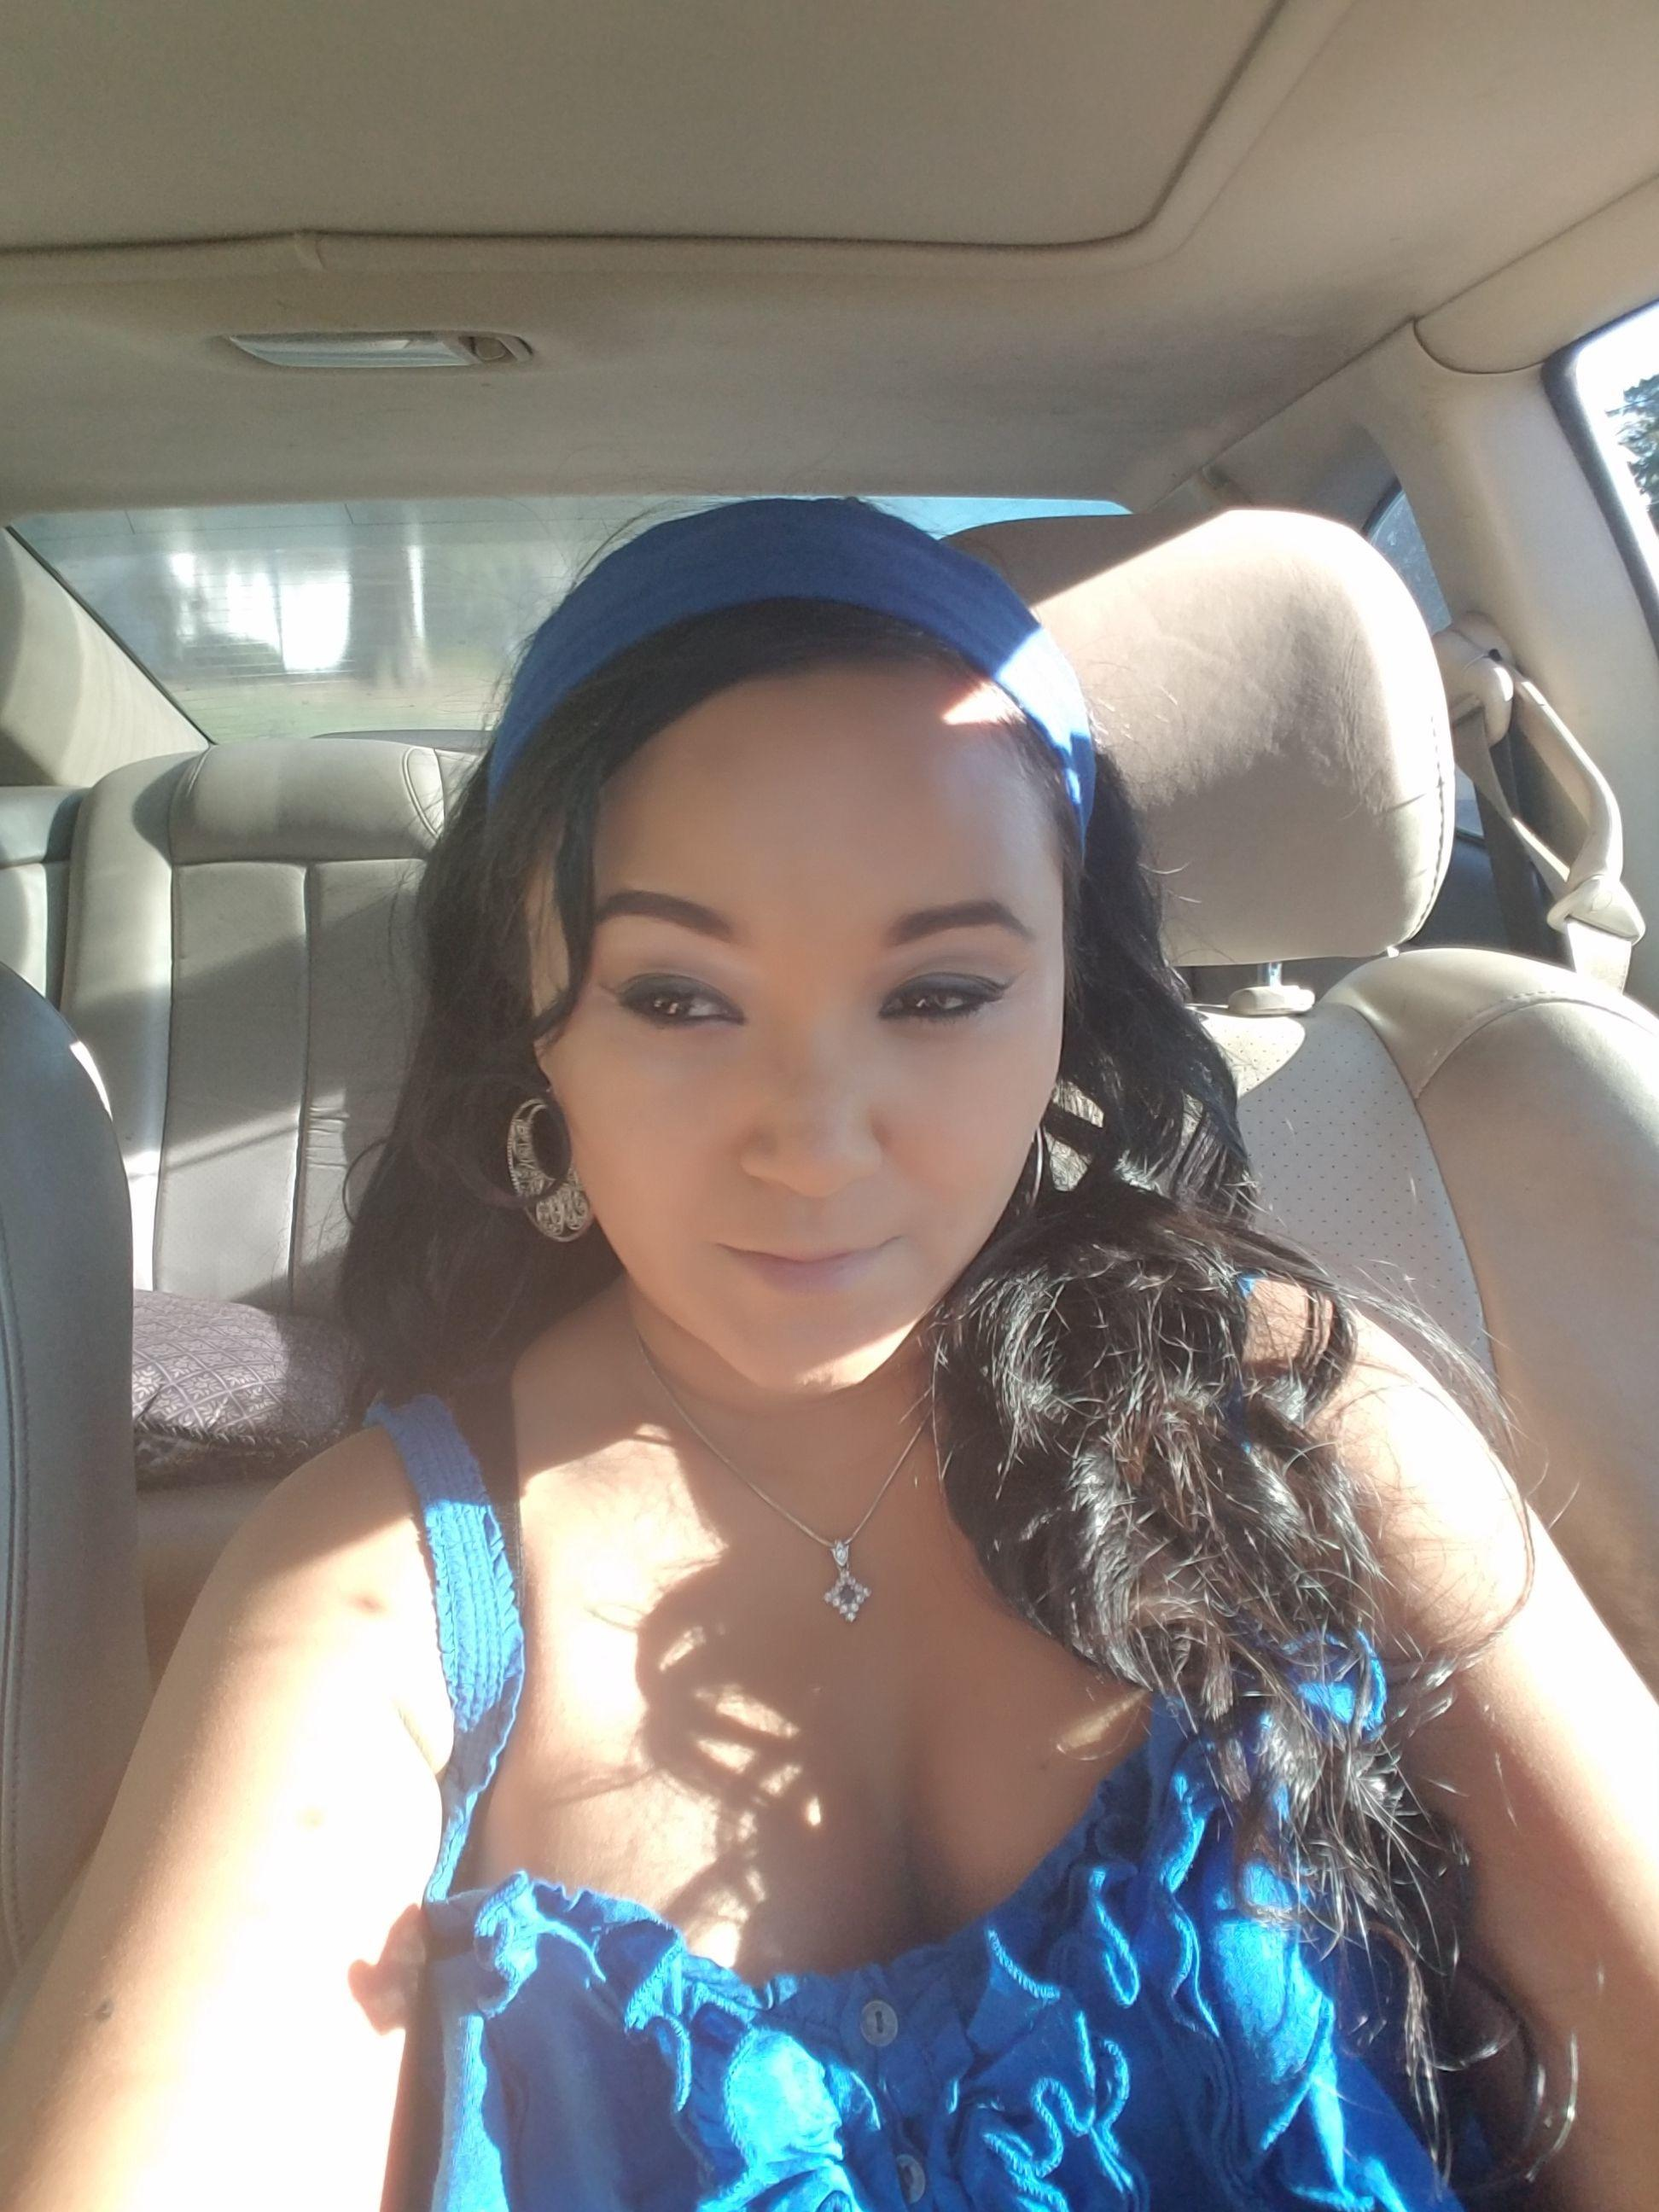 meet fresno singles Meet christian singles in fresno, california online & connect in the chat rooms dhu is a 100% free dating site to find single christians.